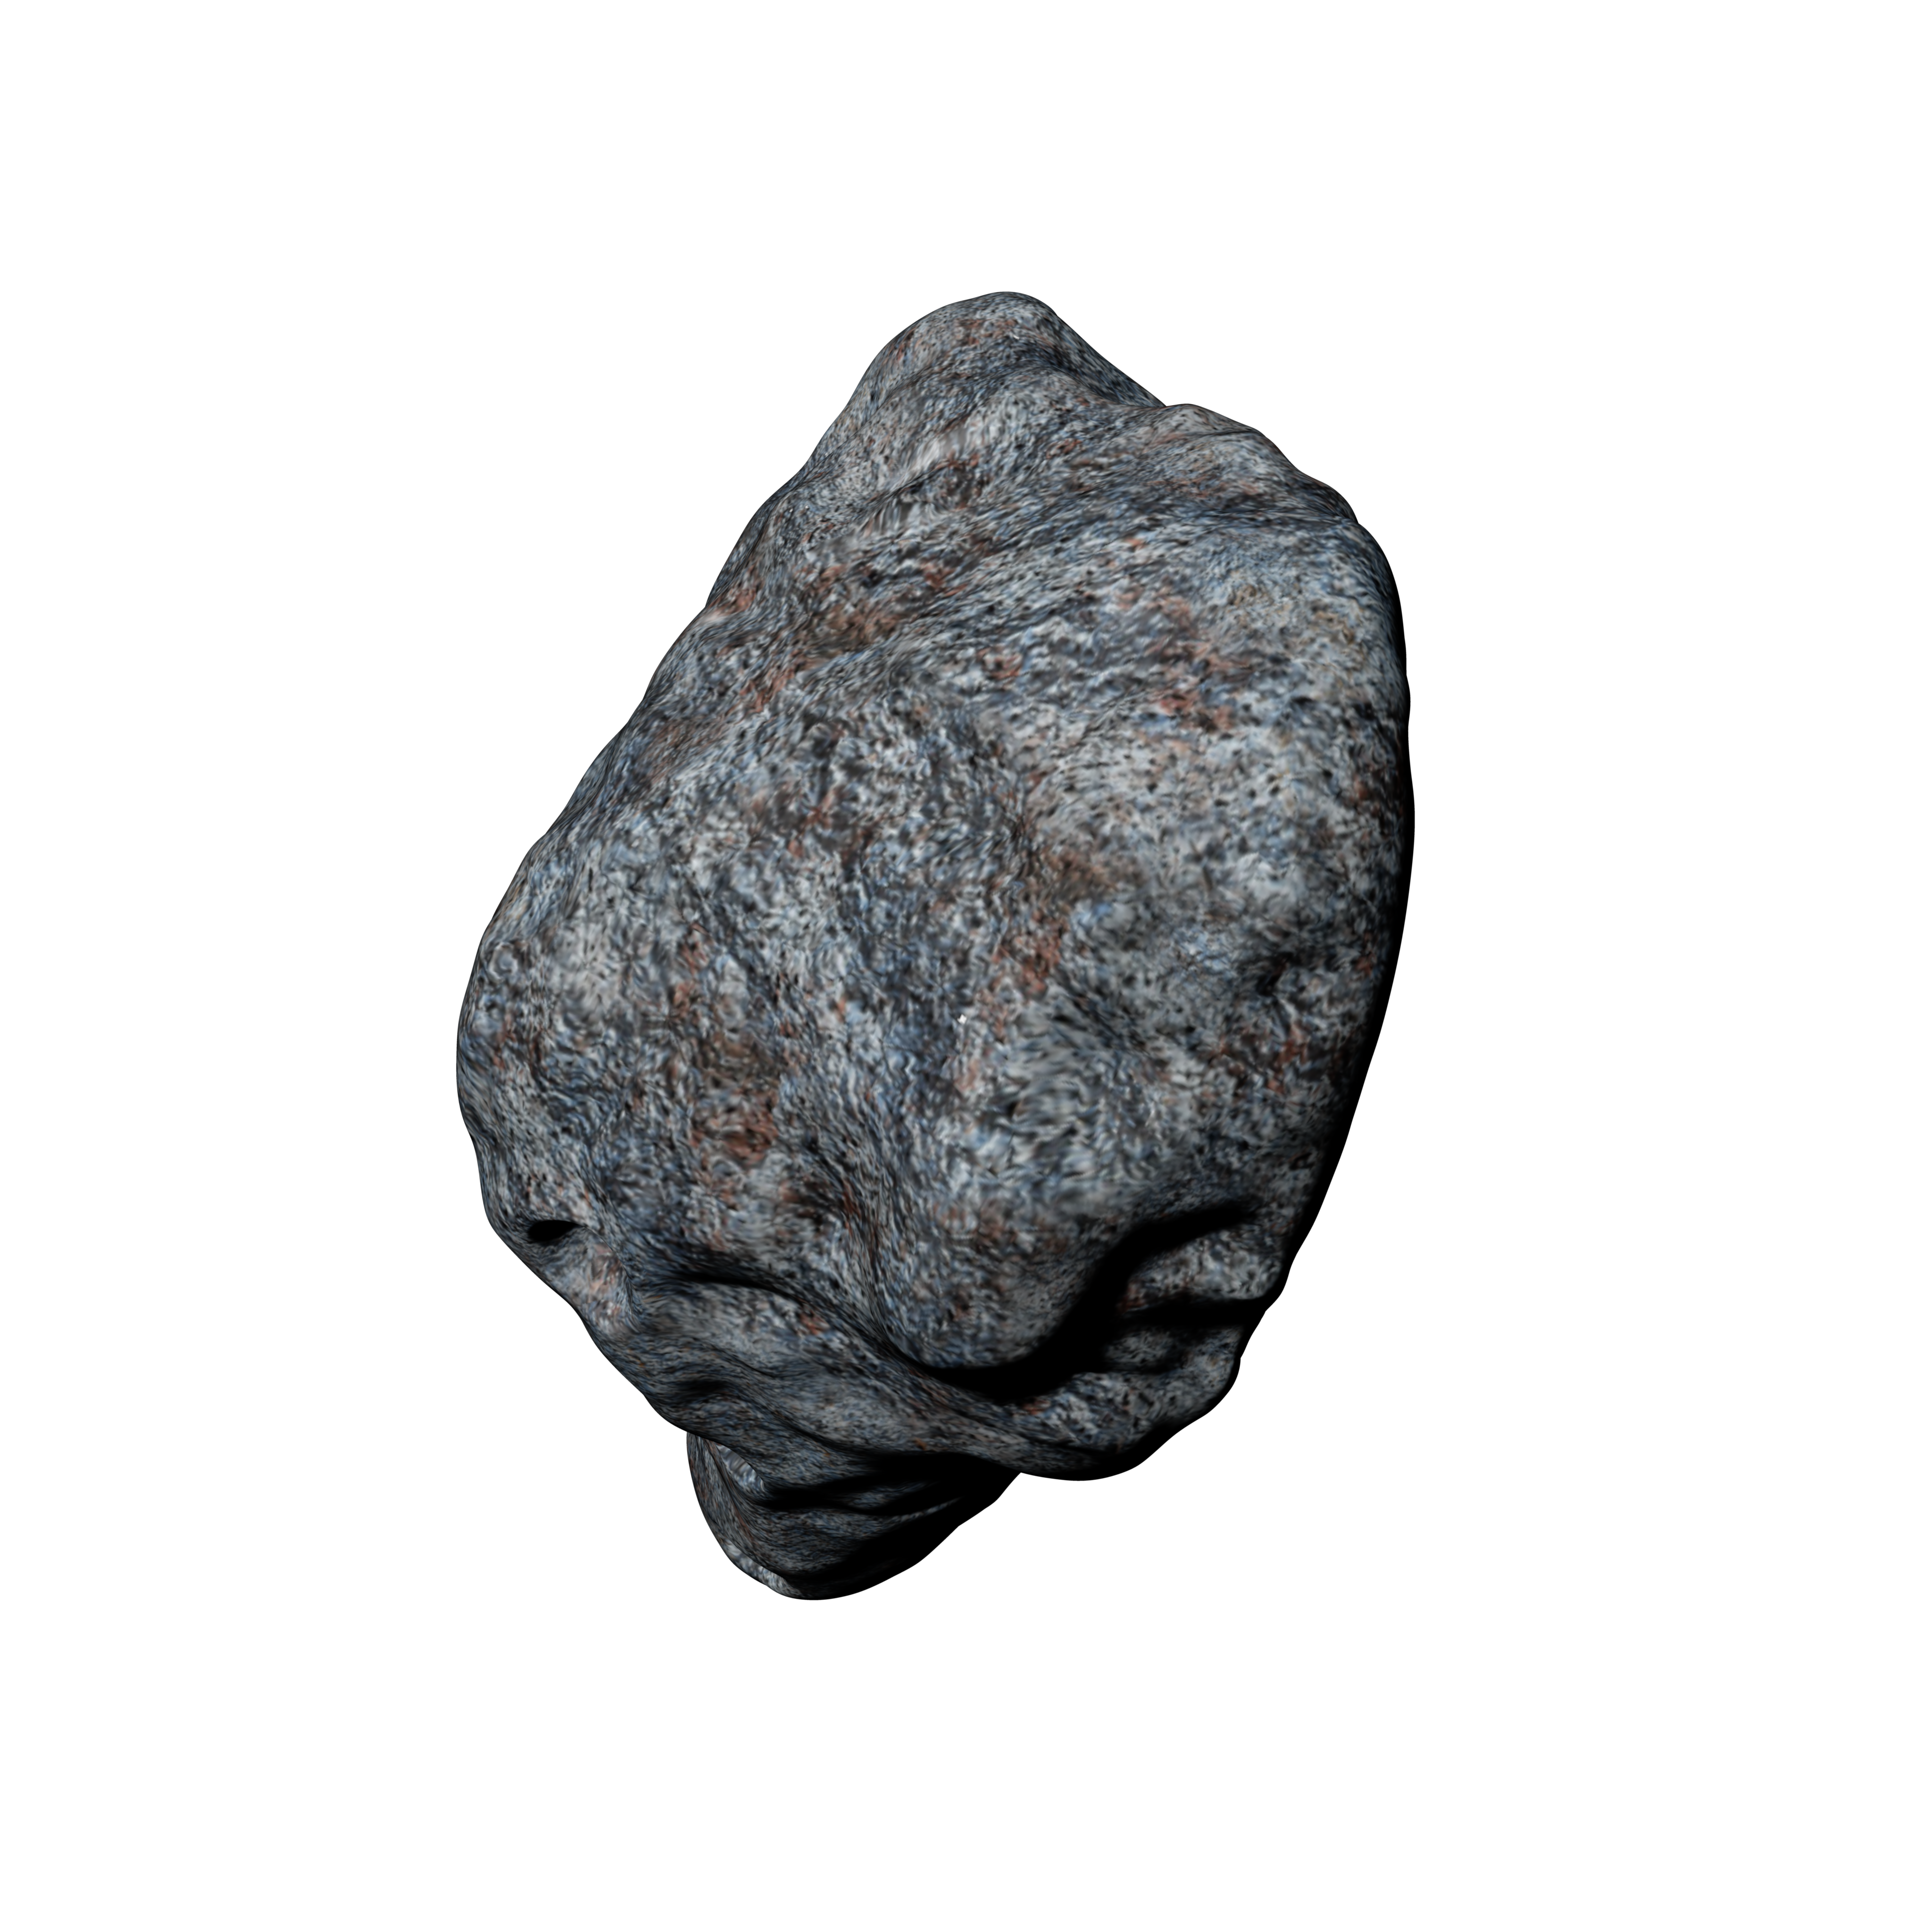 asteroid sprite wall - photo #46